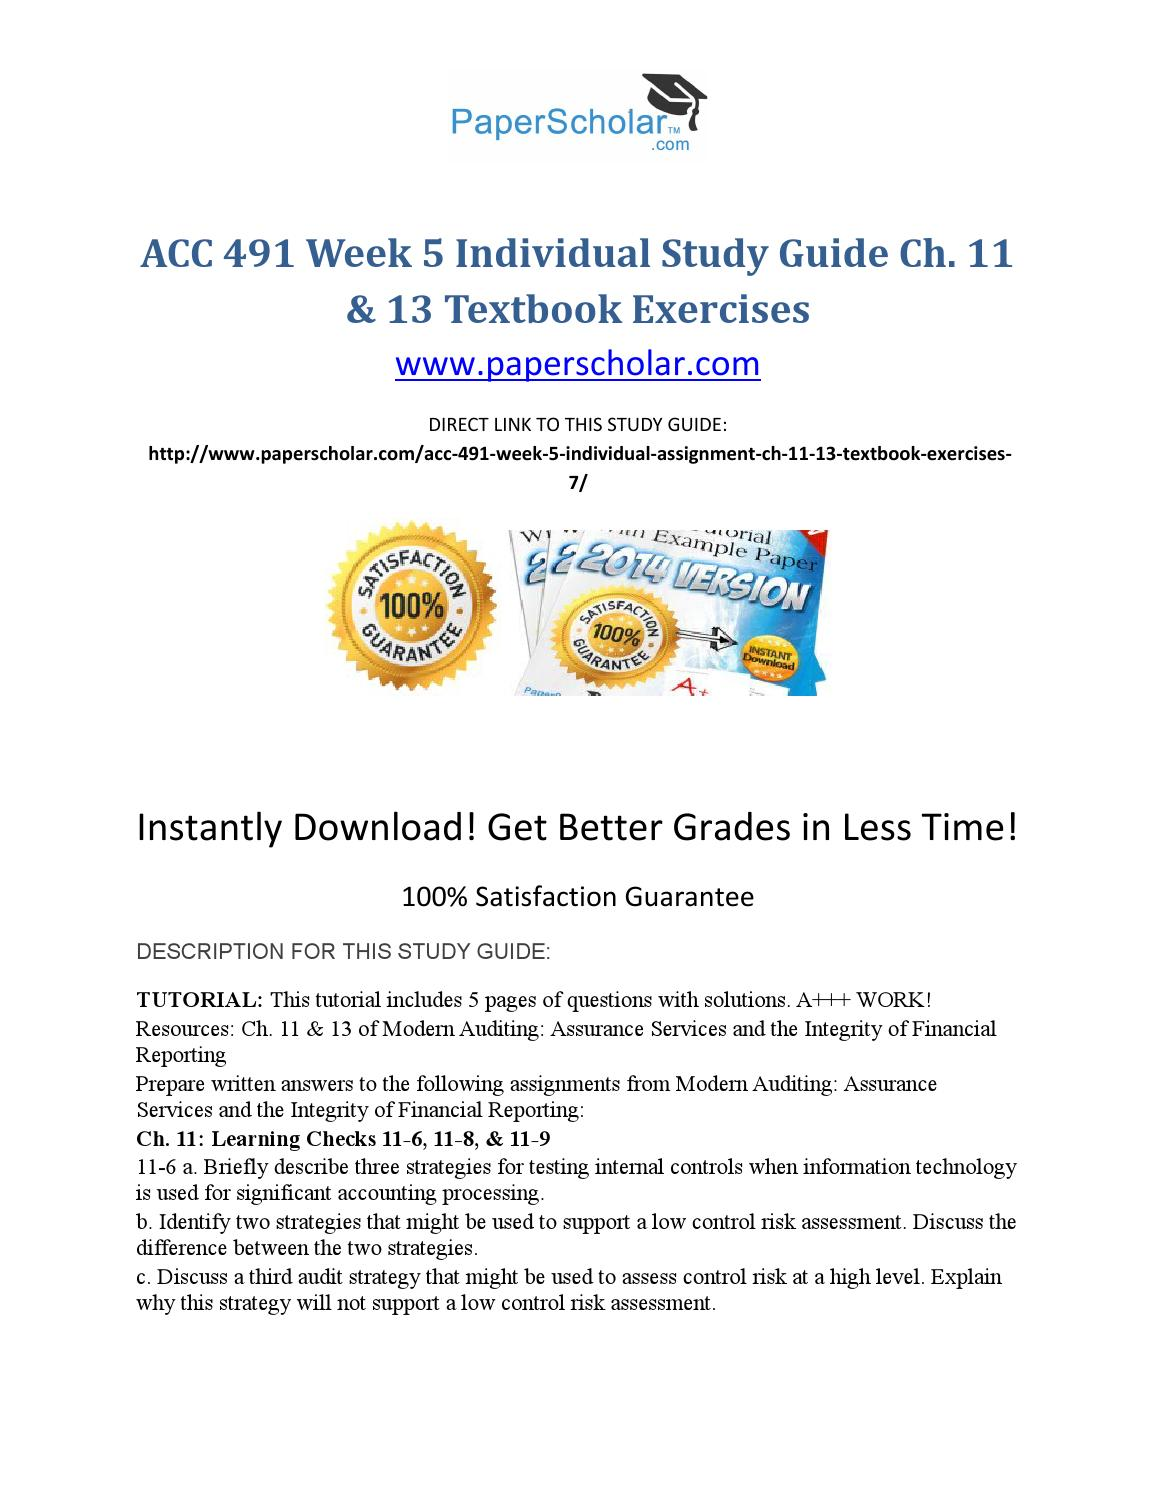 auditing and assurance services homework solutions For homework help with accy 4301 : auditing and assurance services 14th   chapter 18 - solution manual george washington university auditing and.